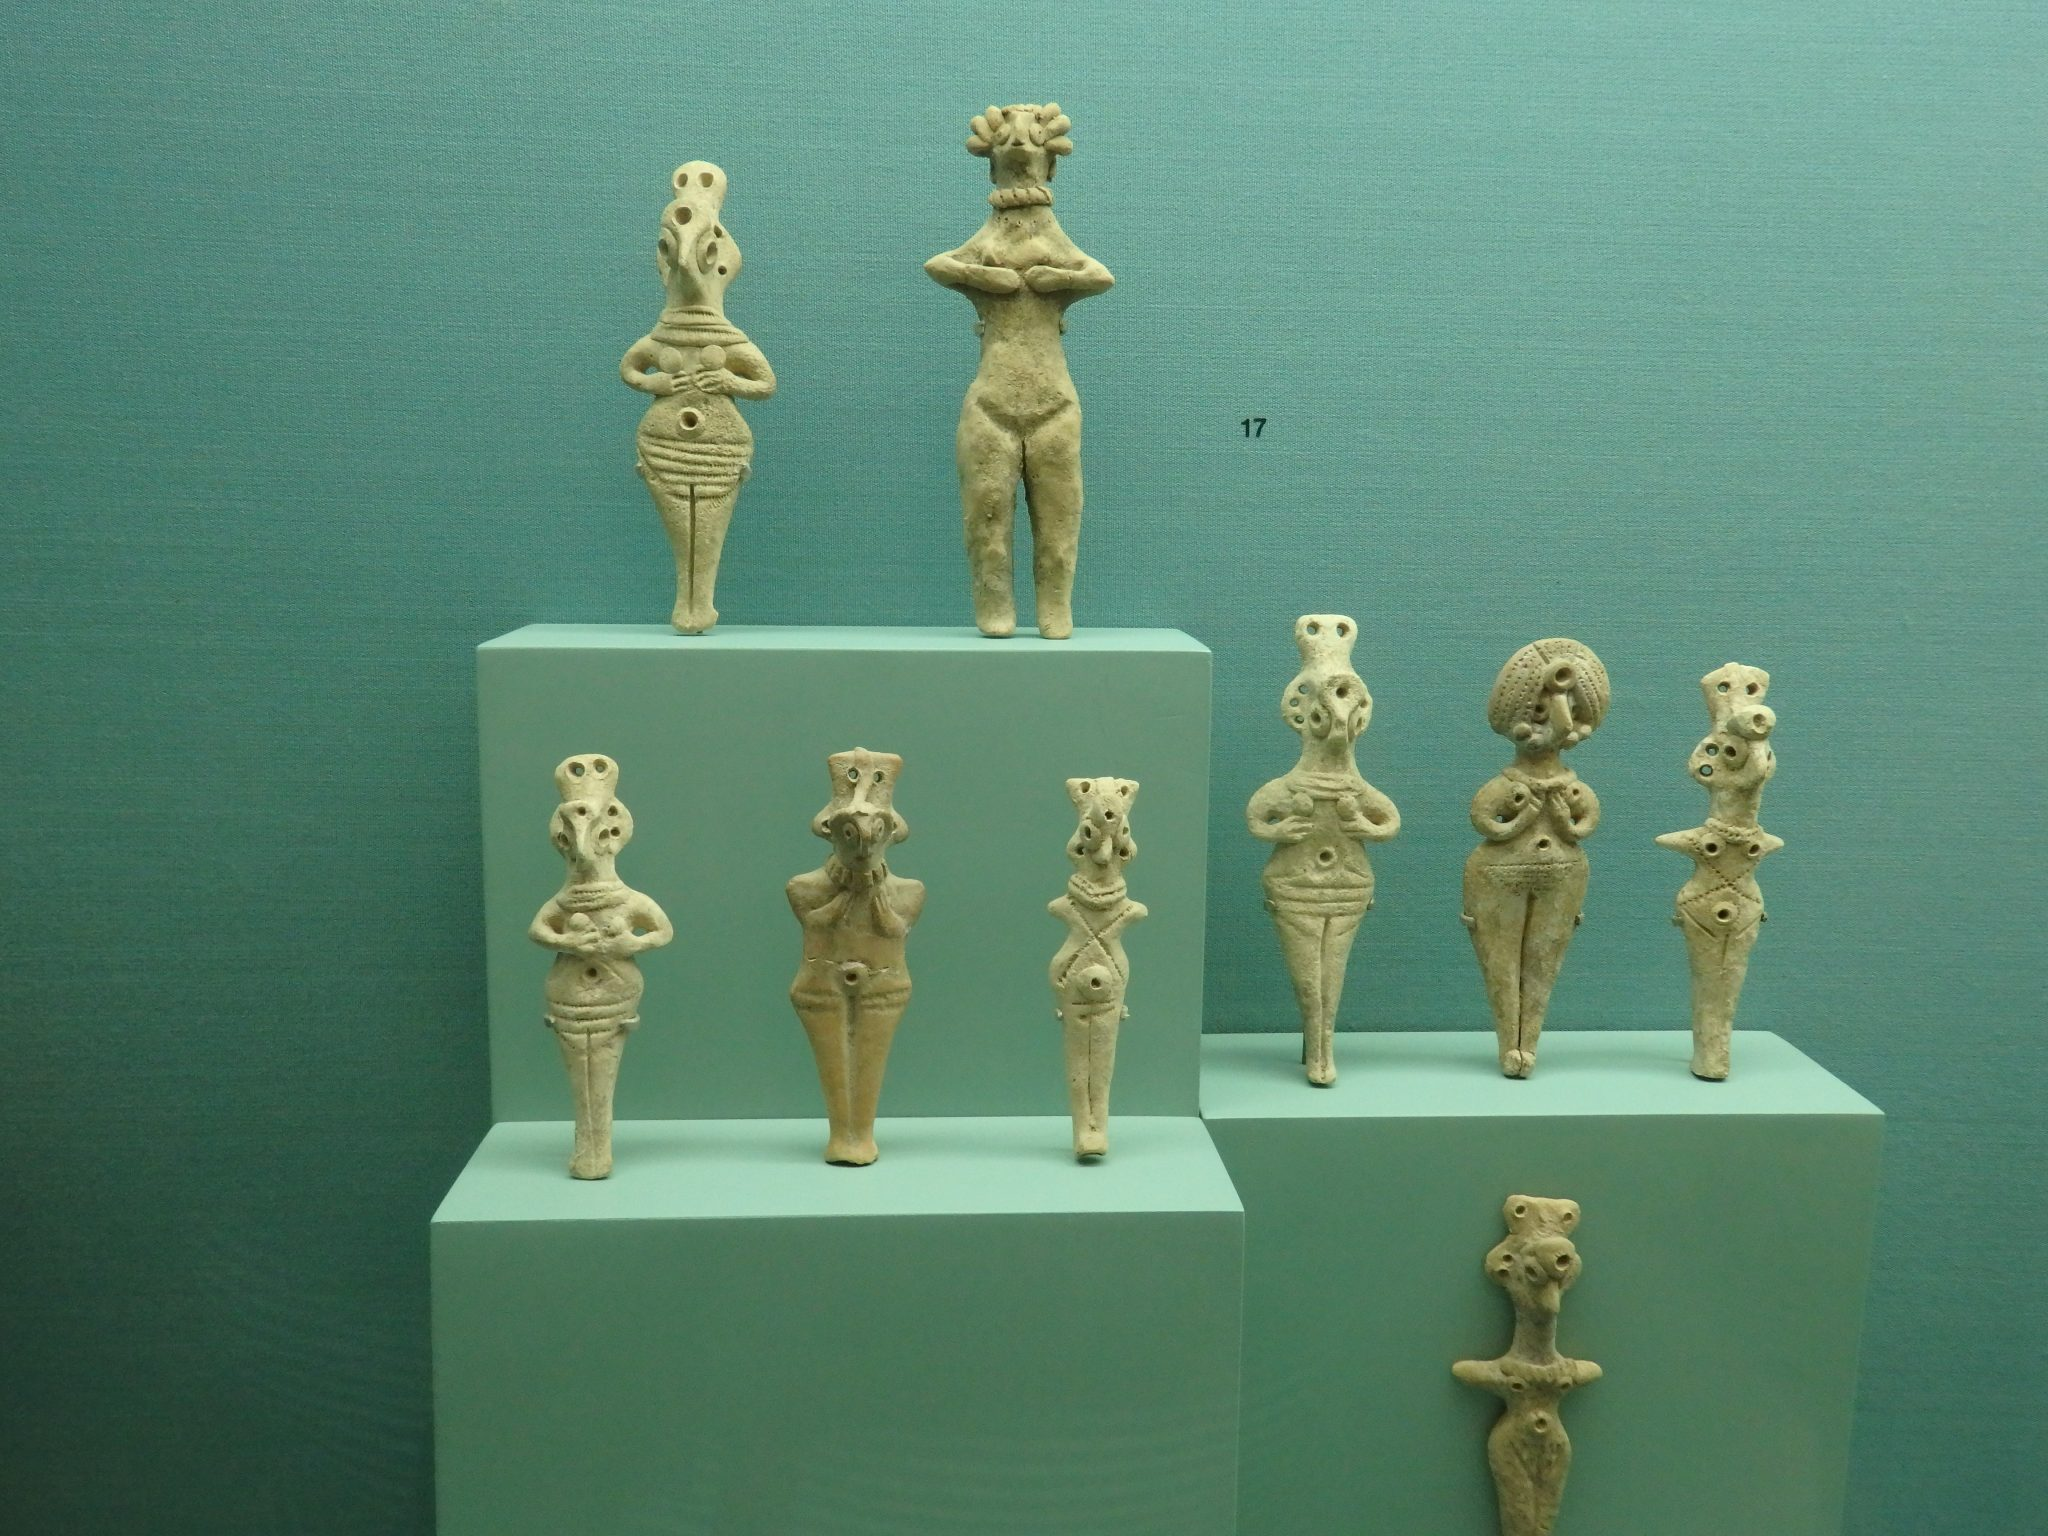 Bronze Age figurines from northern Syria, made from clay, and dating from 2000-1550 BCE in the Bible Lands Museum in Jerusalem.